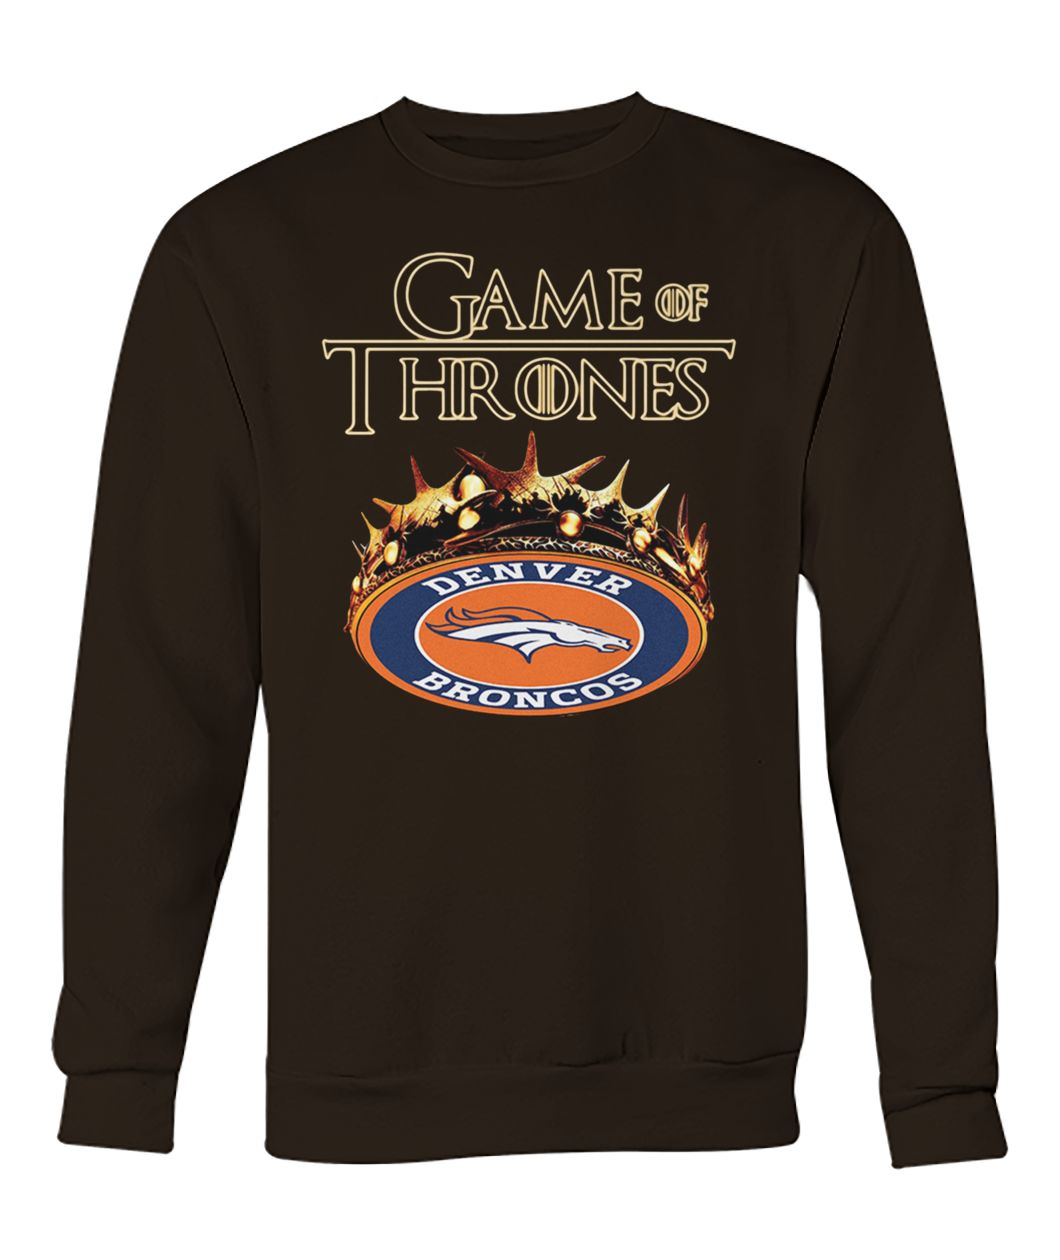 Game of thrones crown denver broncos crew neck sweatshirt